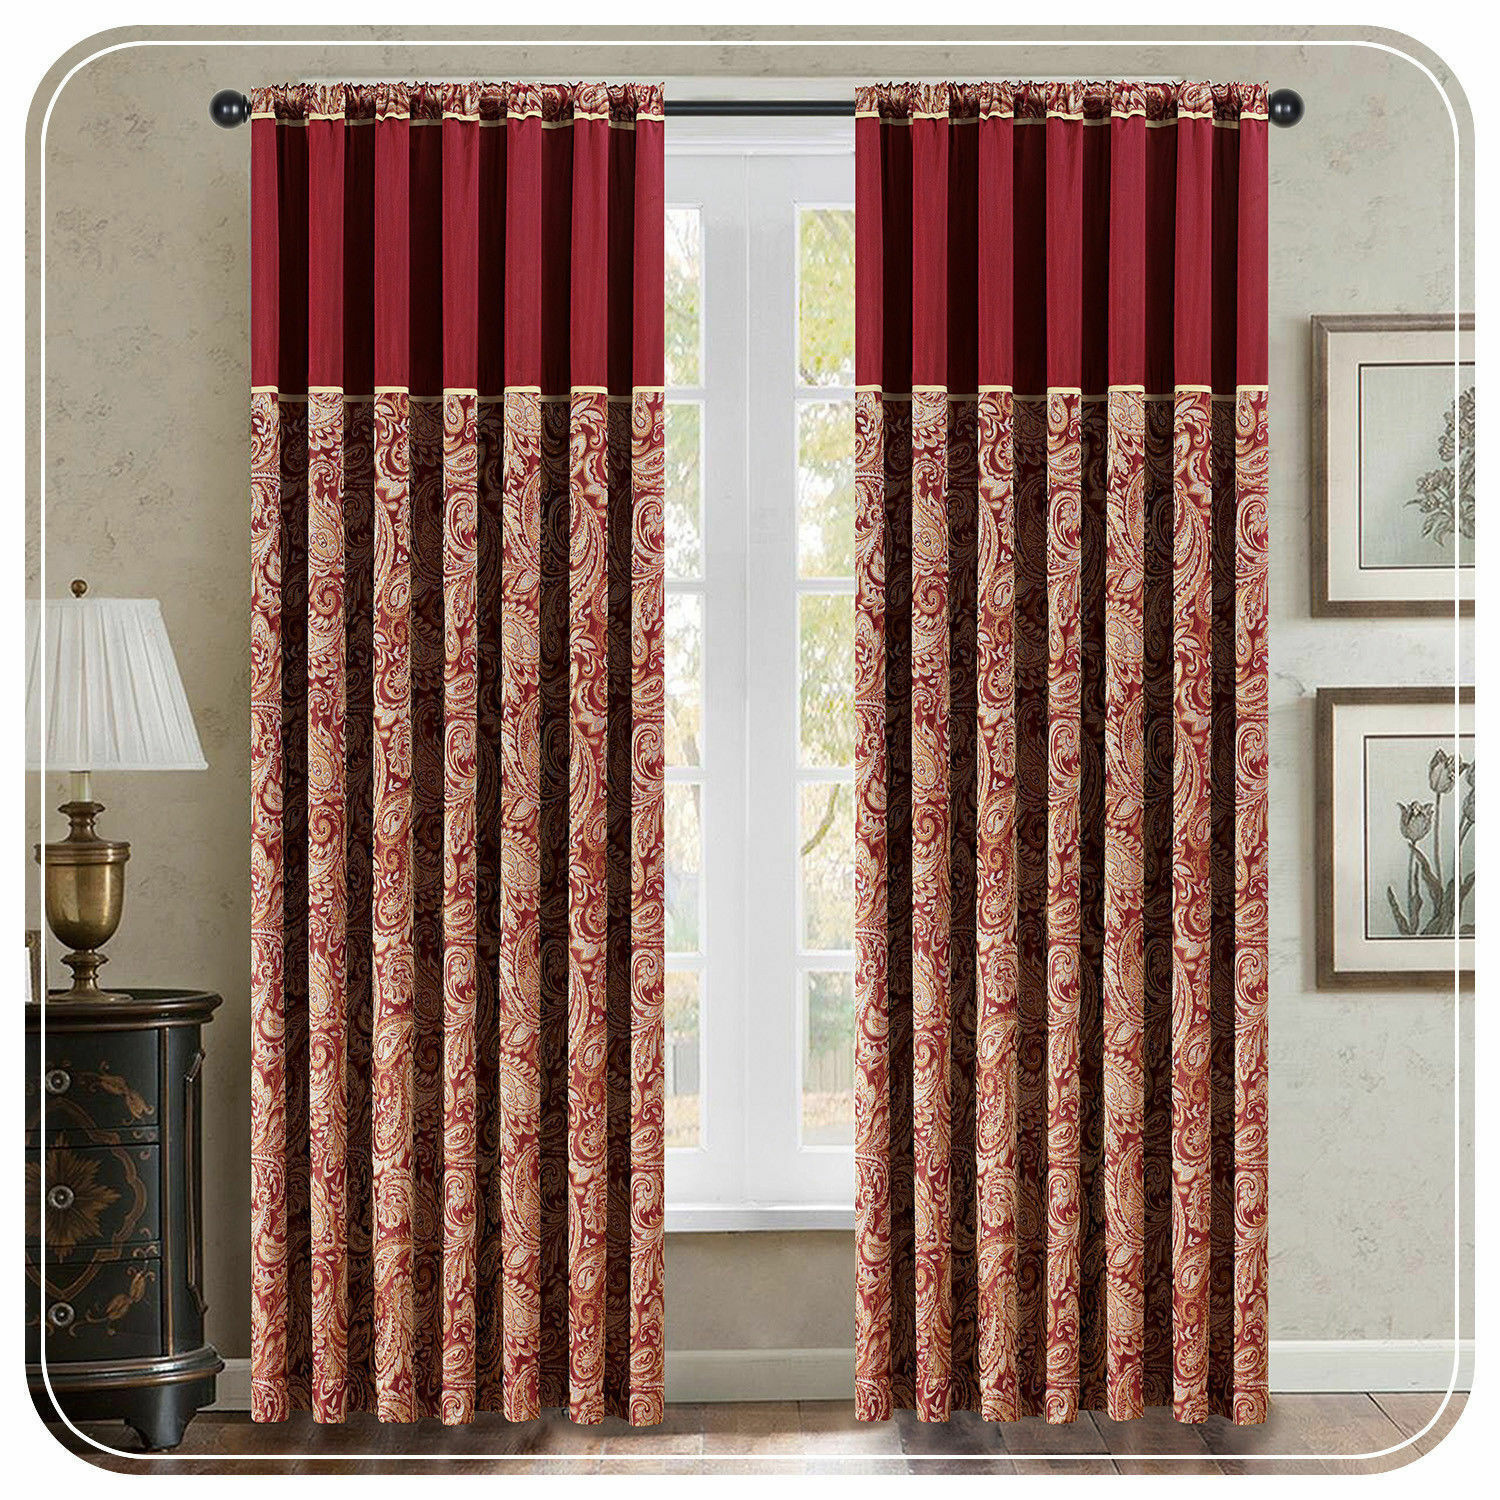 LUXURY PAISLEY JACQUARD JACQUARD JACQUARD CURTAINS  FULLY LINED BURGUNDY RING TOP  TAPE TOP 047955